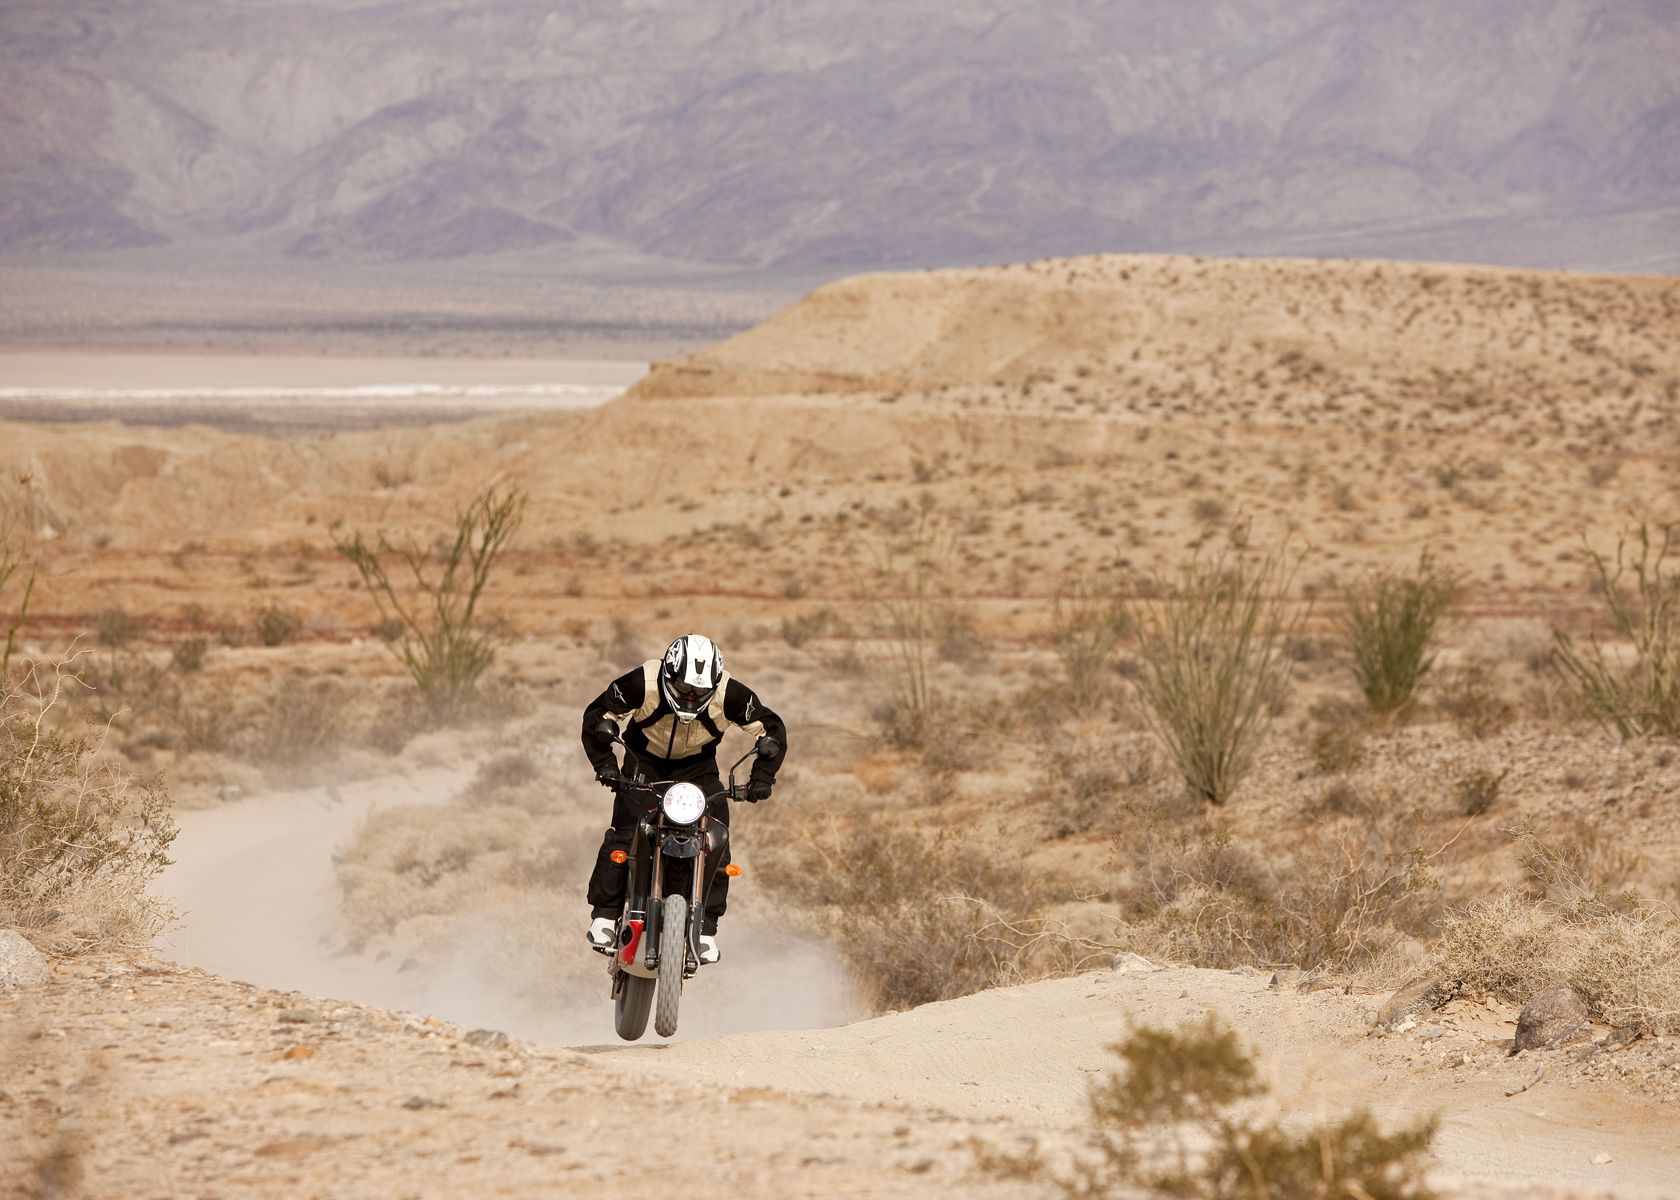 2010 Zero DS Electric Motorcycle: Anza Borego - One Man Charges in Sand